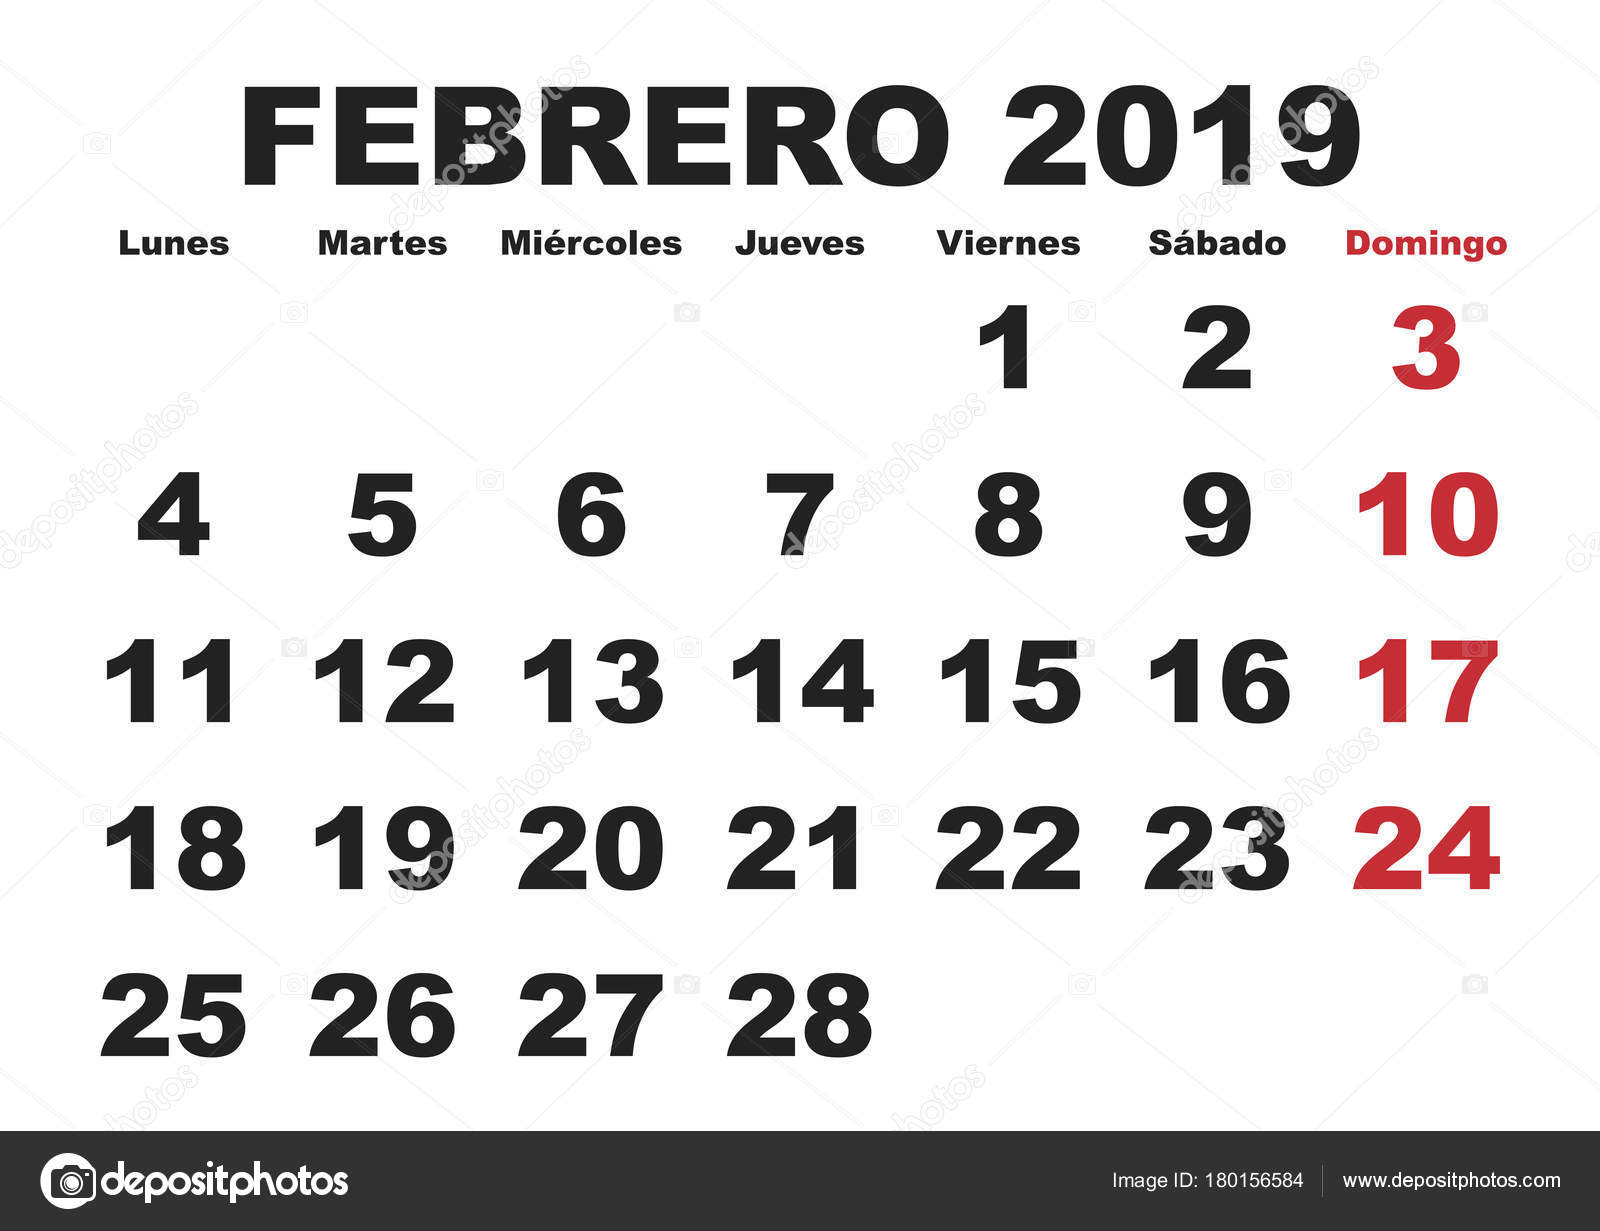 Calendario 2019 Mes A Mes.Febrero 2019 Pared Calendario Espanol Archivo Imagenes Vectoriales